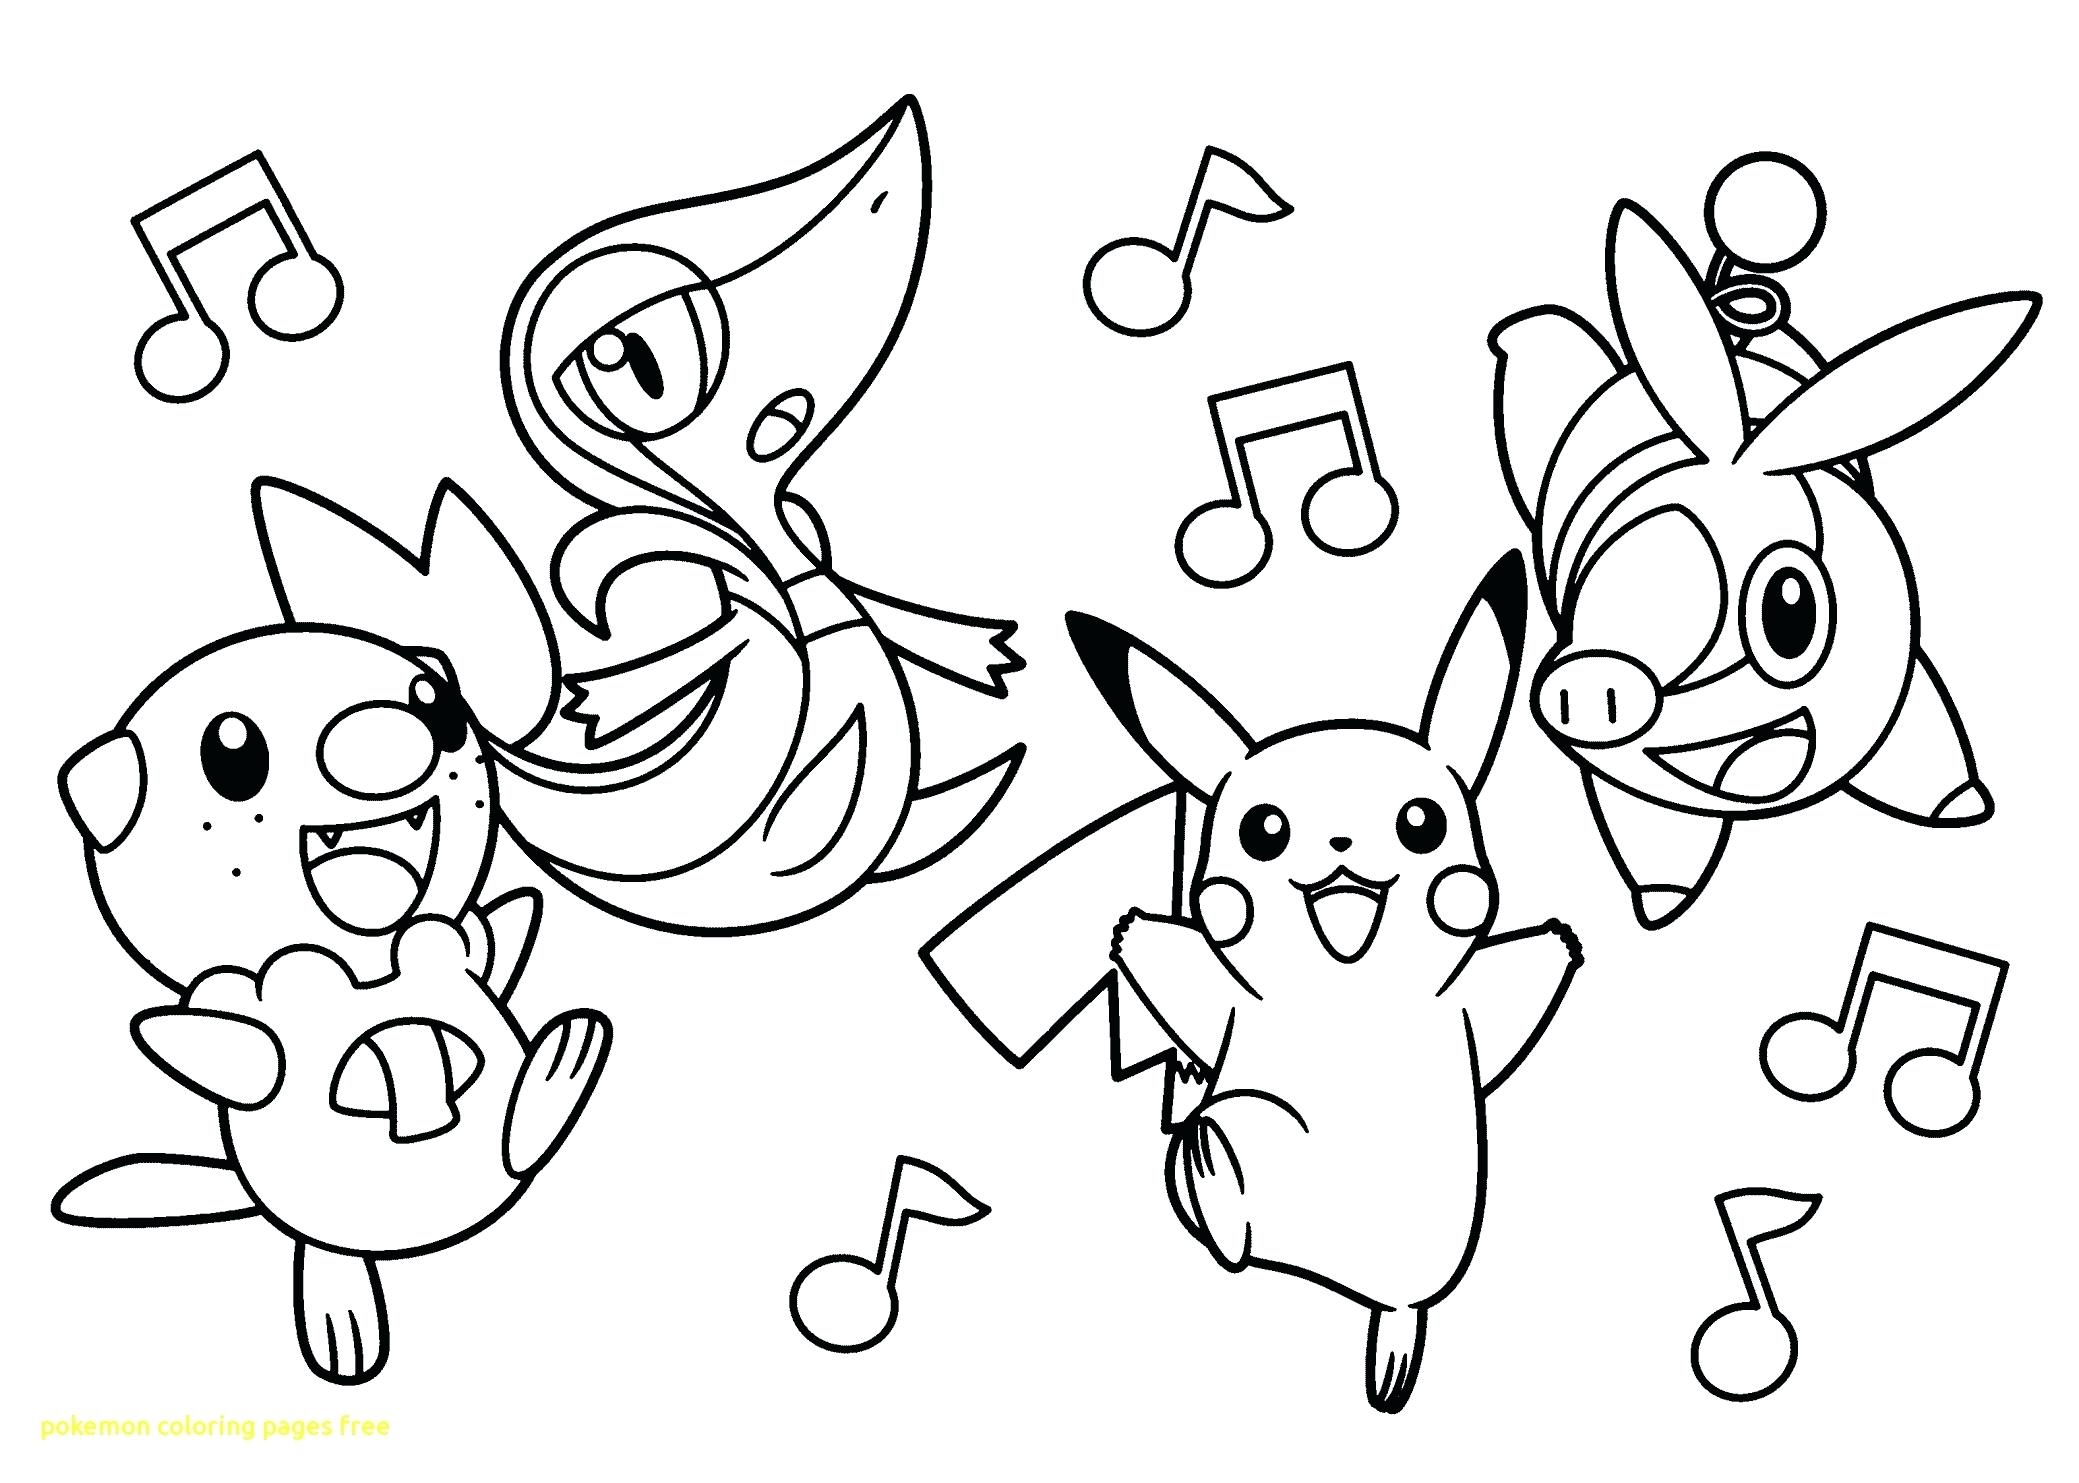 Pokemon Coloring Pages Printable Black And White At Getdrawings Free Download